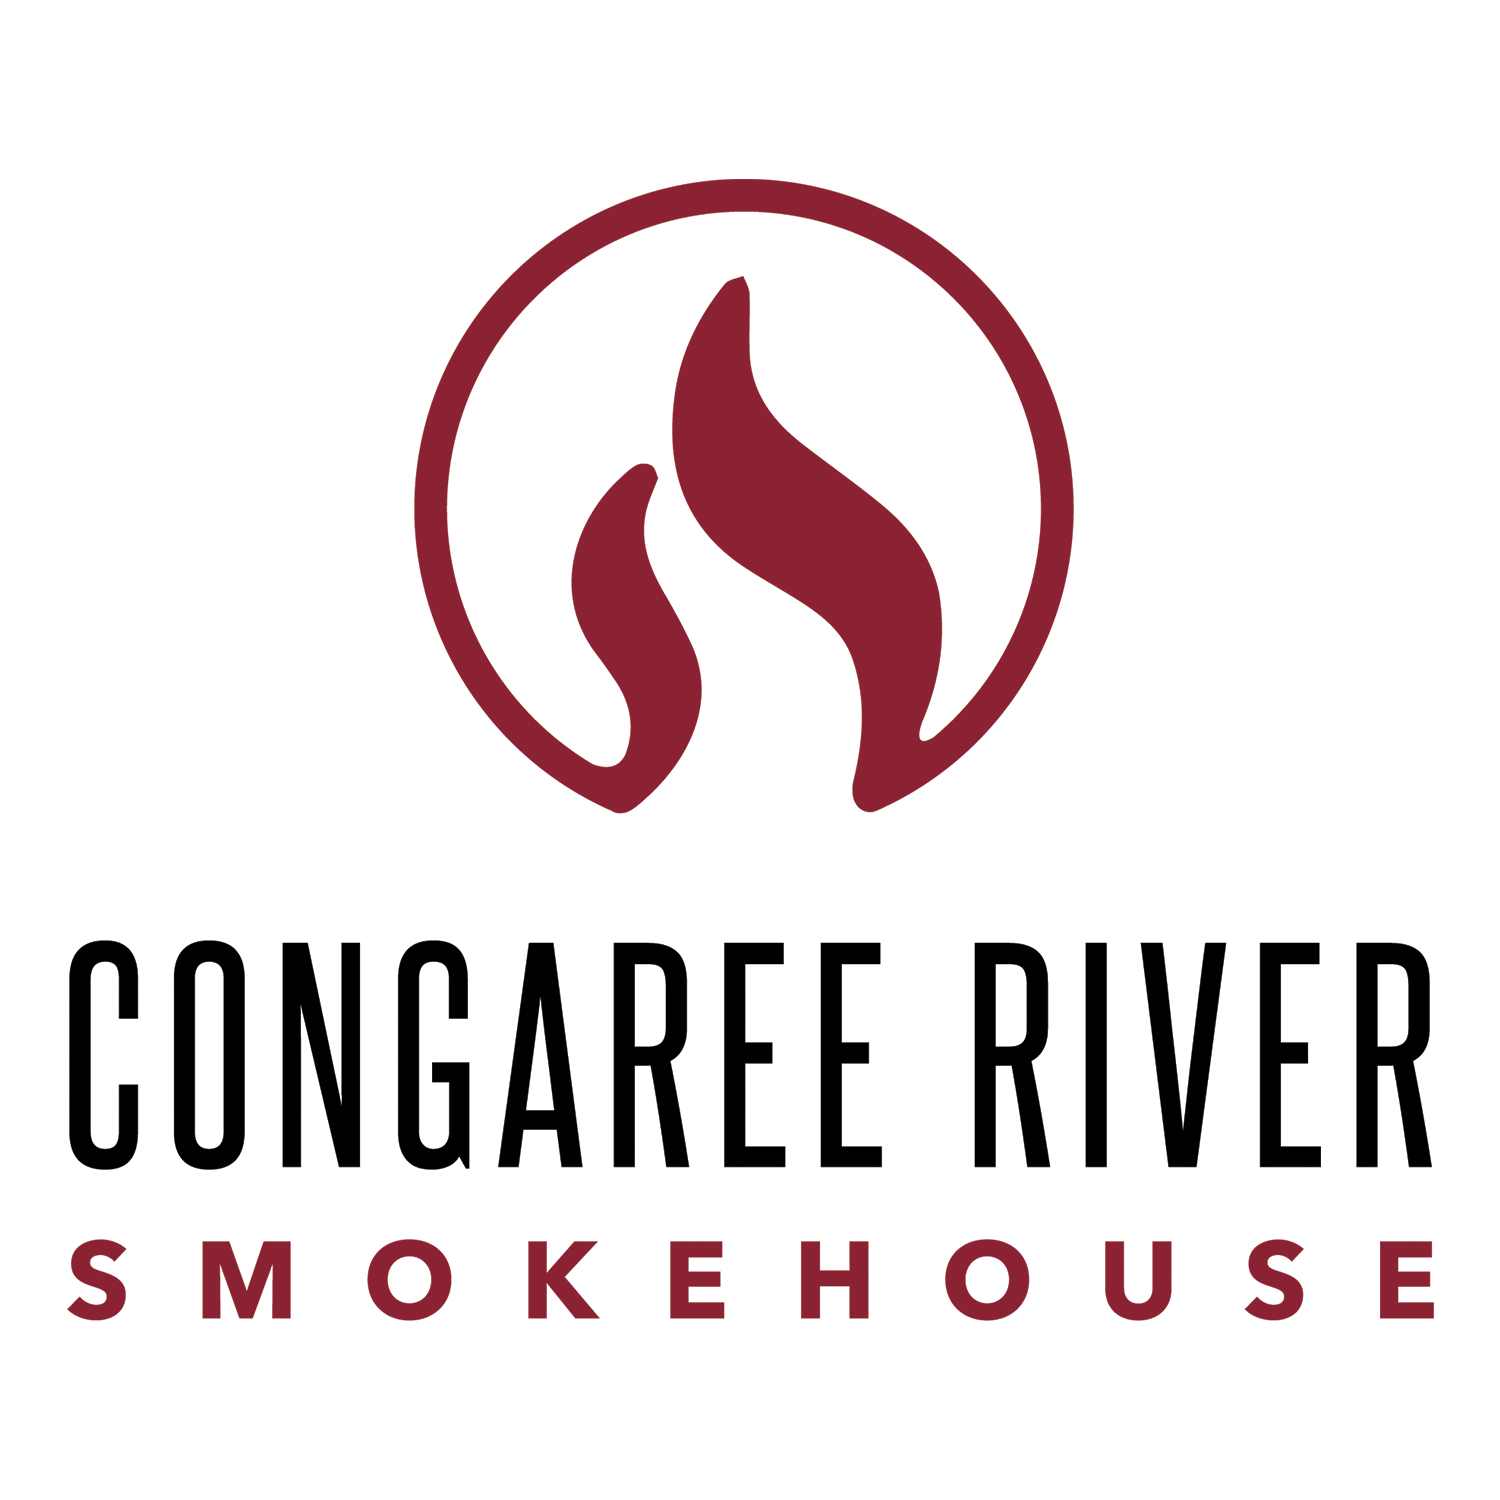 Congaree River Smokehouse